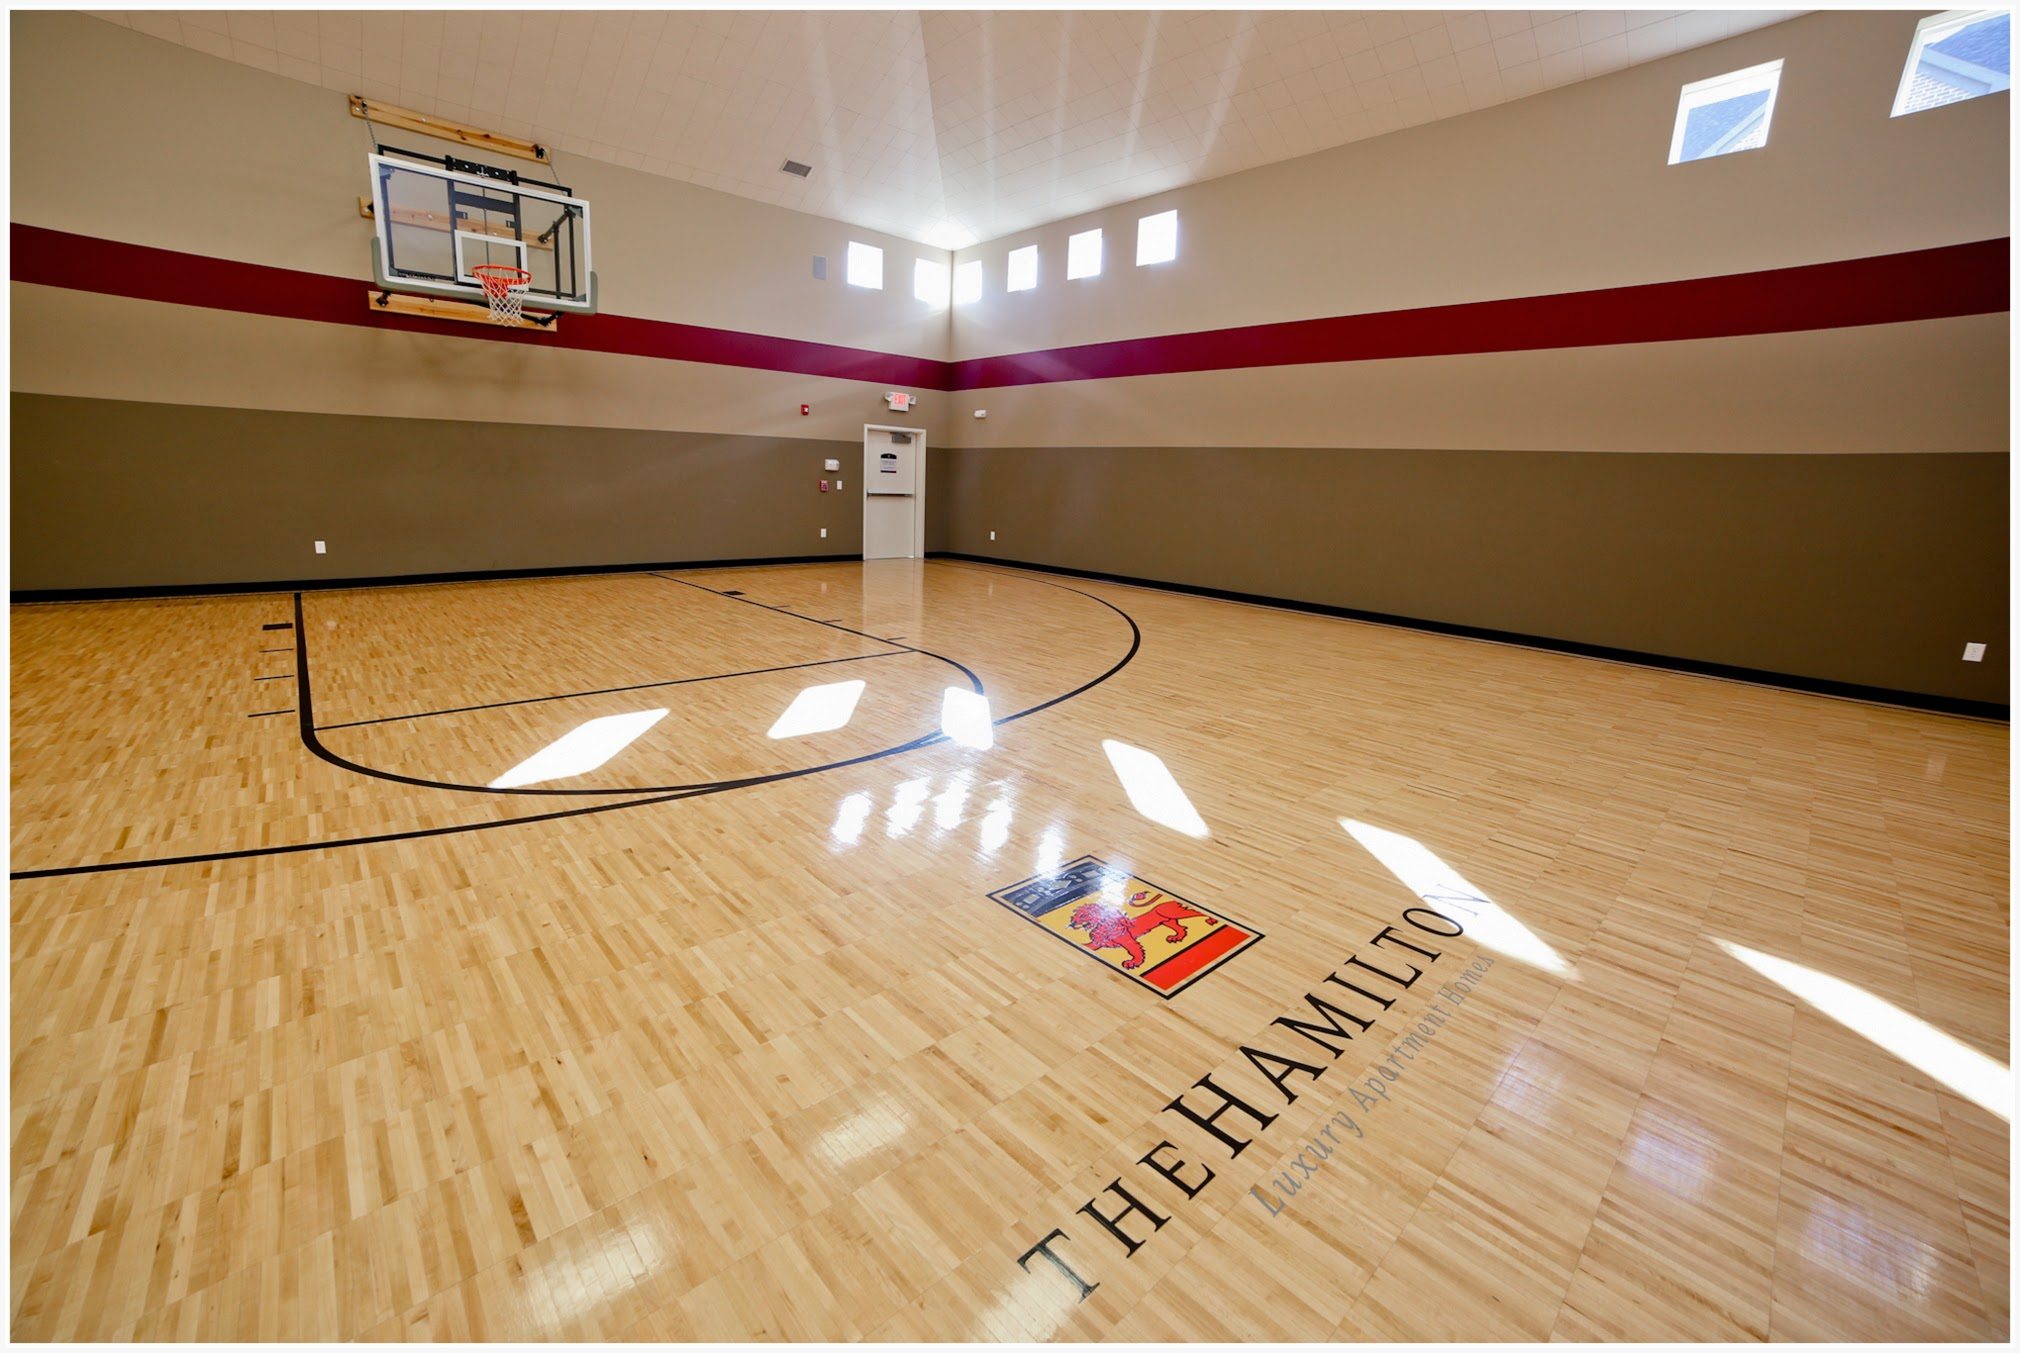 Hamilton - Basketball court (amenities).jpg